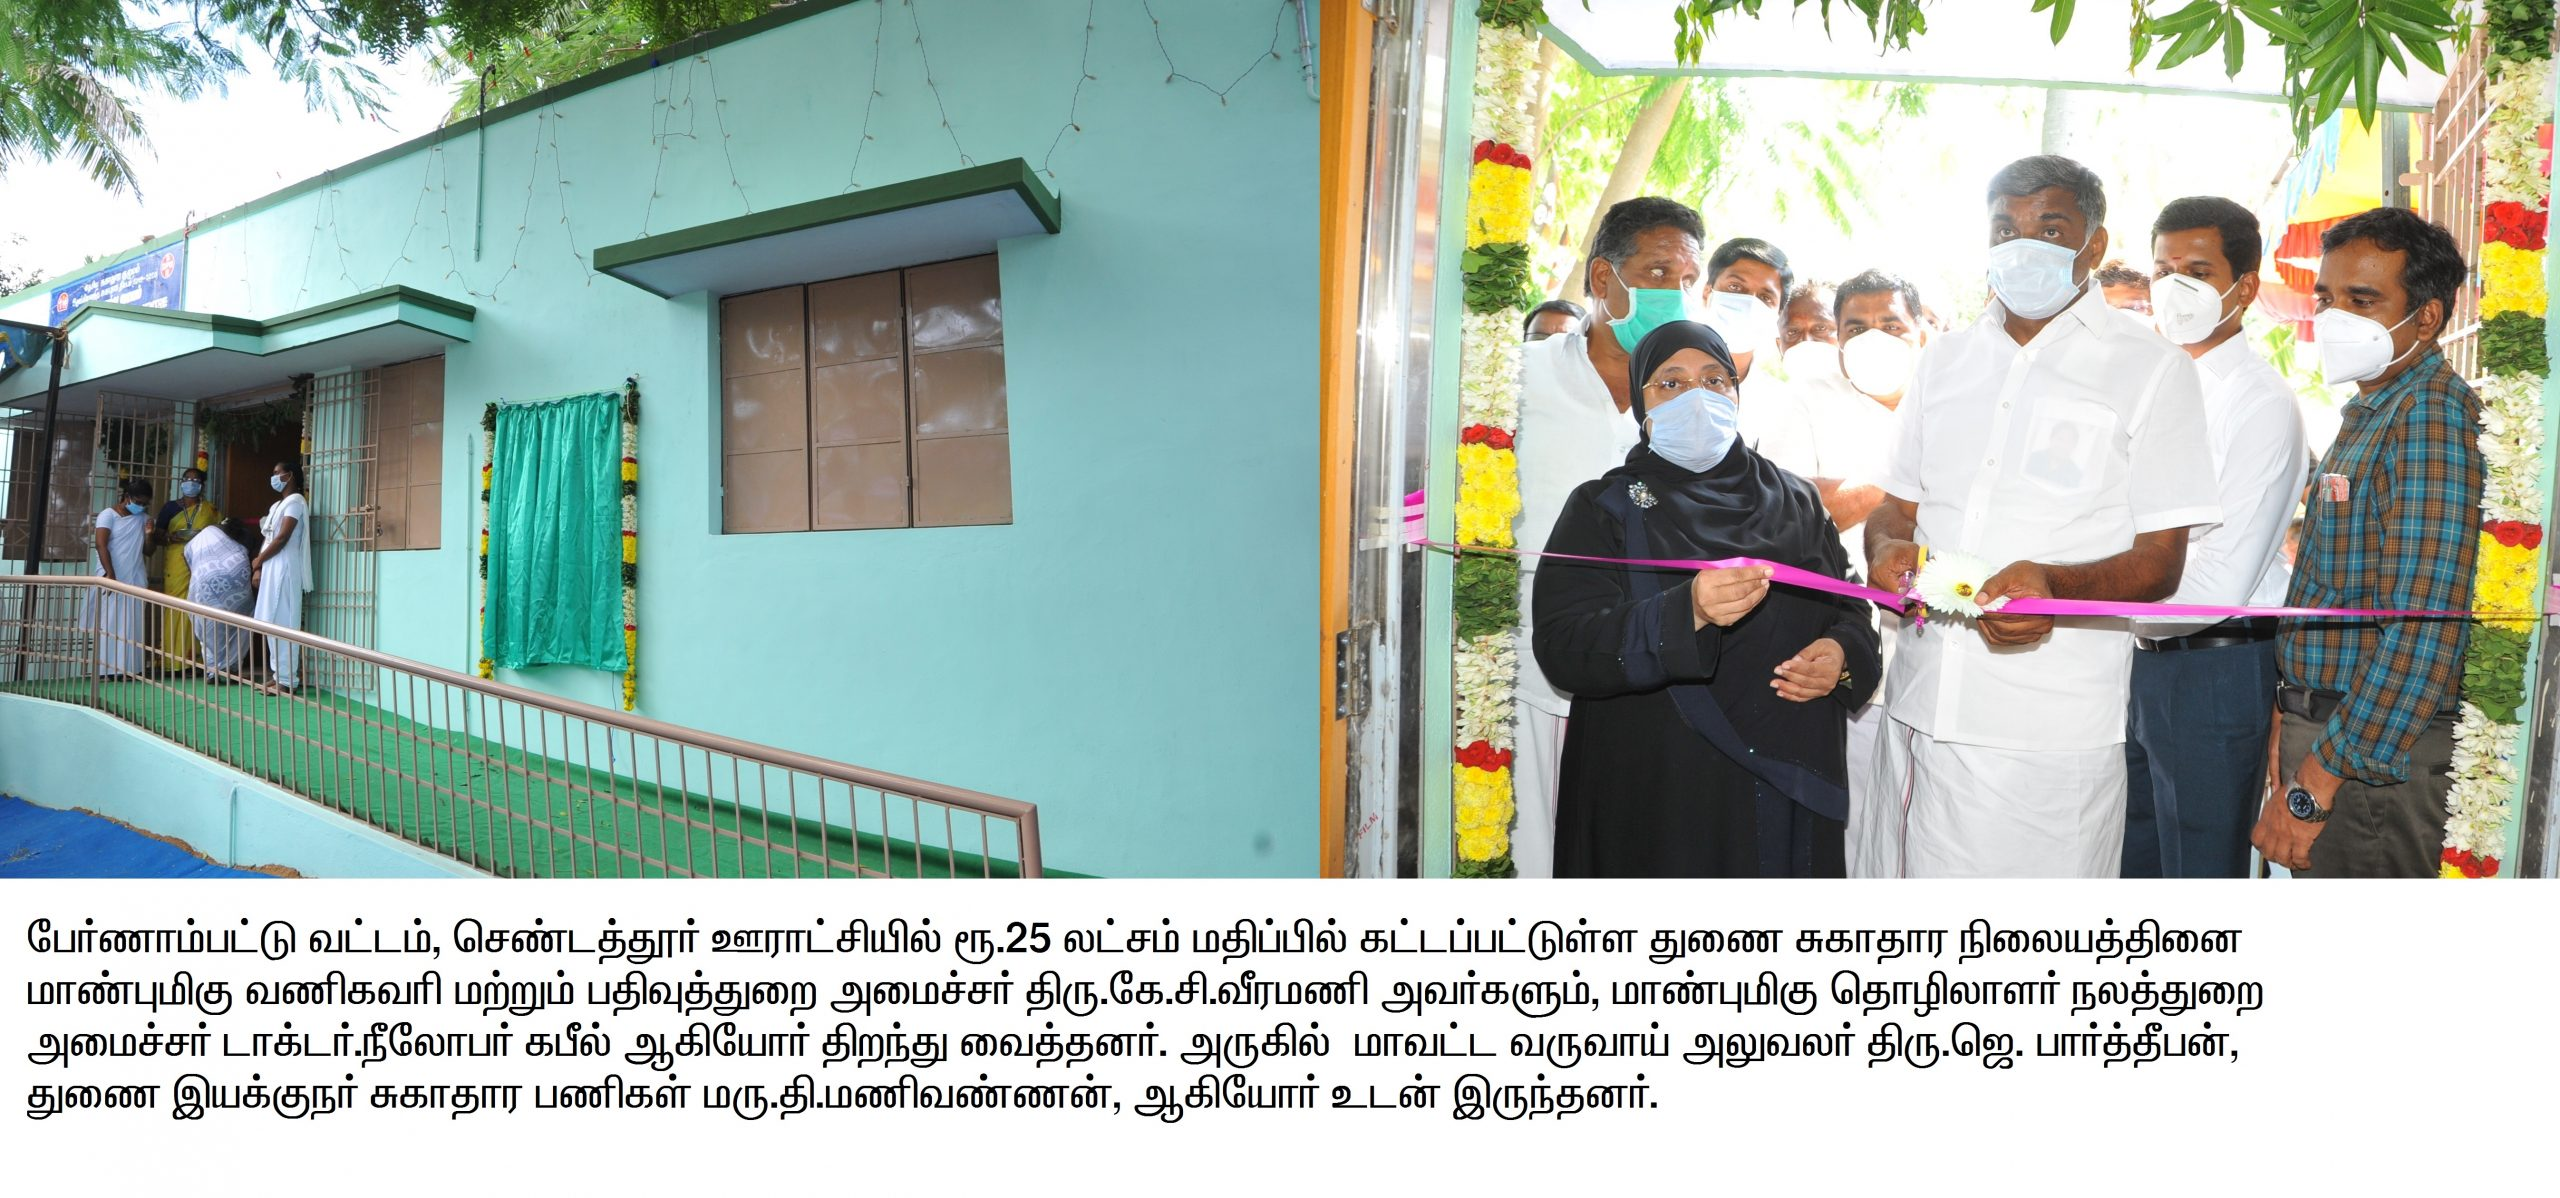 Honorable Minister K C Veeramani Inaugurated Primary Health Centre 14-10-2020